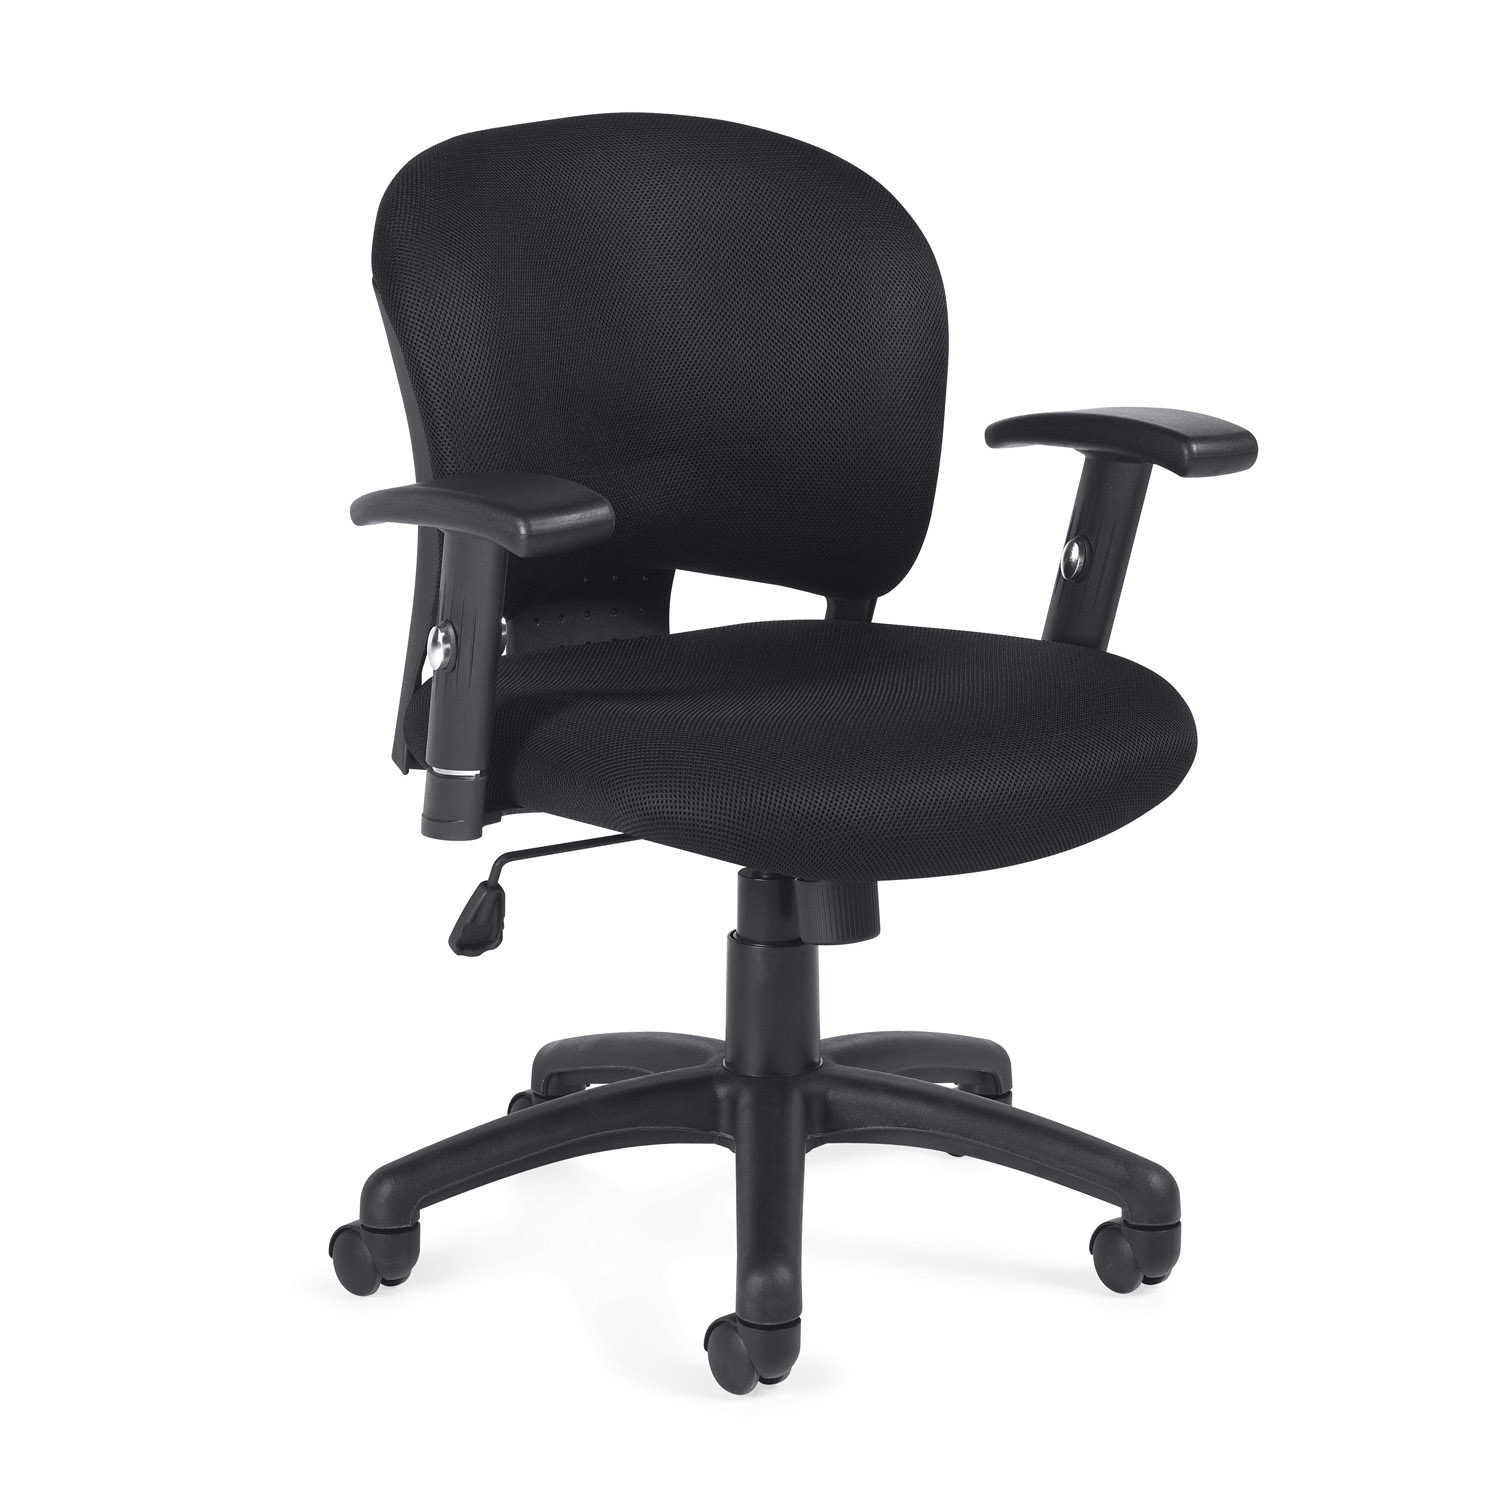 OTG Fabric Managers Chair #11800B